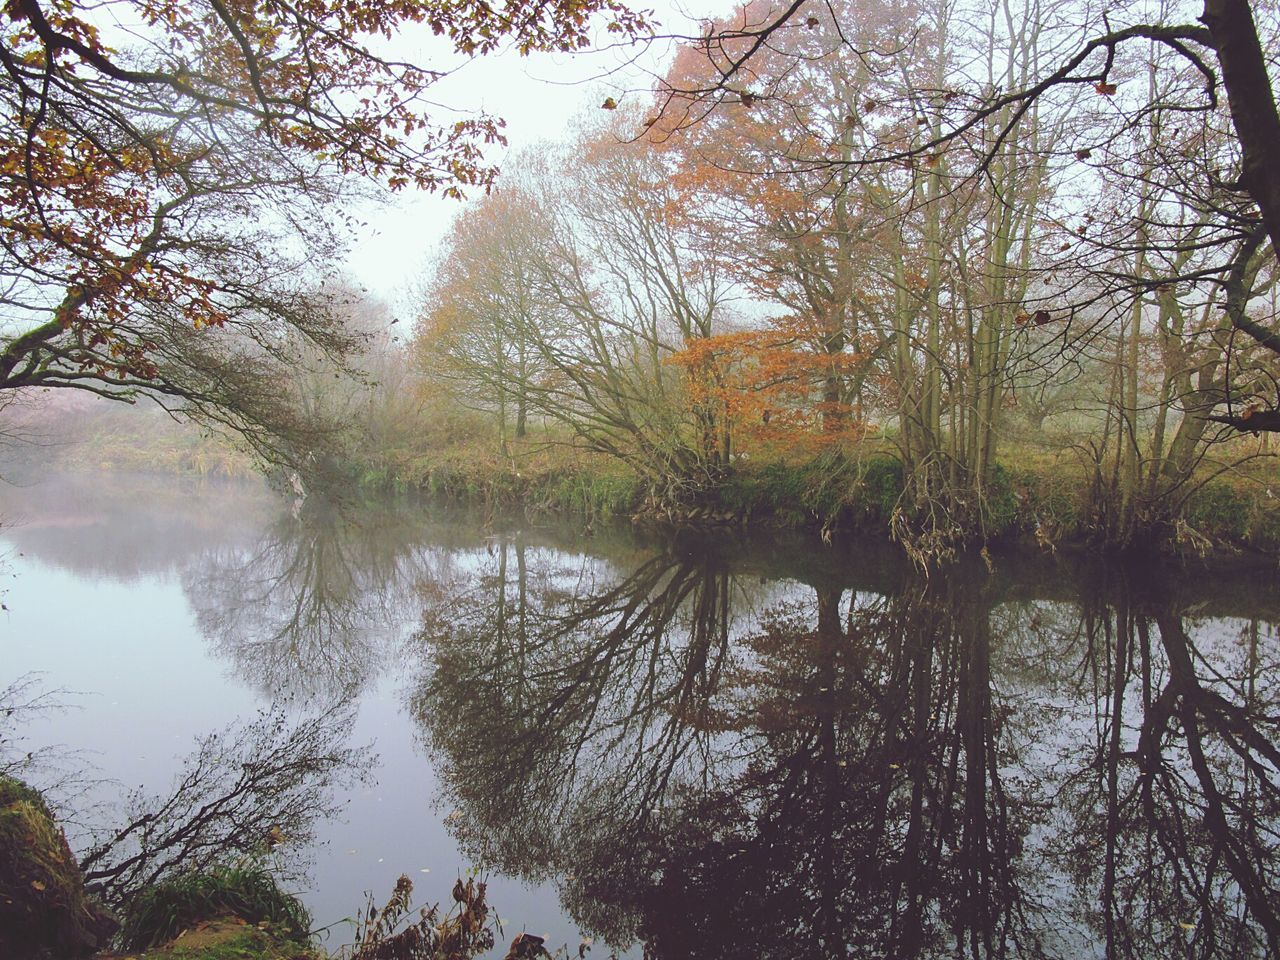 Cold Temperature Autumnbeauty Autumn Leaves EyeEmbestshots Foggy Morning Valleys Woodlands Fineartphotography Reflection River Bank  Autumn Tranquil Scene Beauty In Nature WoodLand Foggymornings Outdoors Frosty Days Scenics Tranquility Non-urban Scene Landscape Fog Water Day Enchanted Forest Winter Is Coming